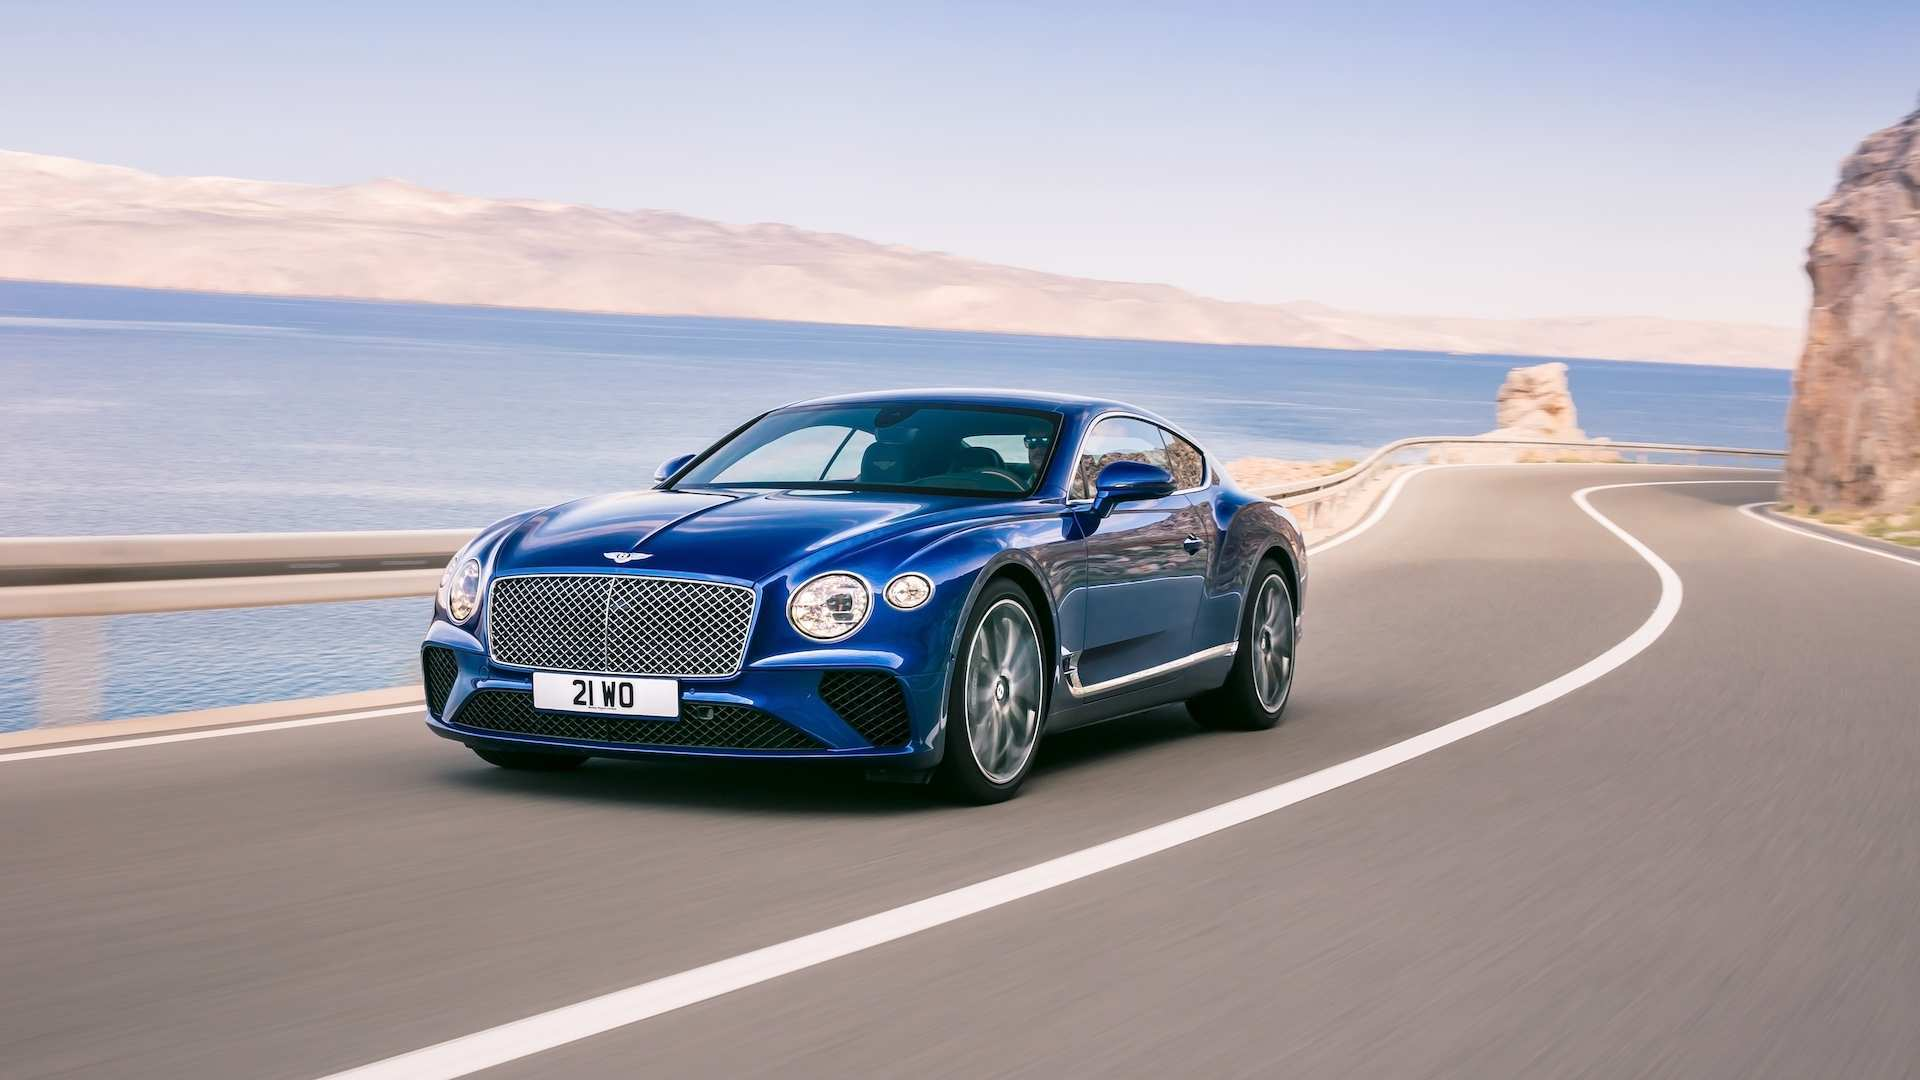 26 All New 2019 Bentley New Review for 2019 Bentley